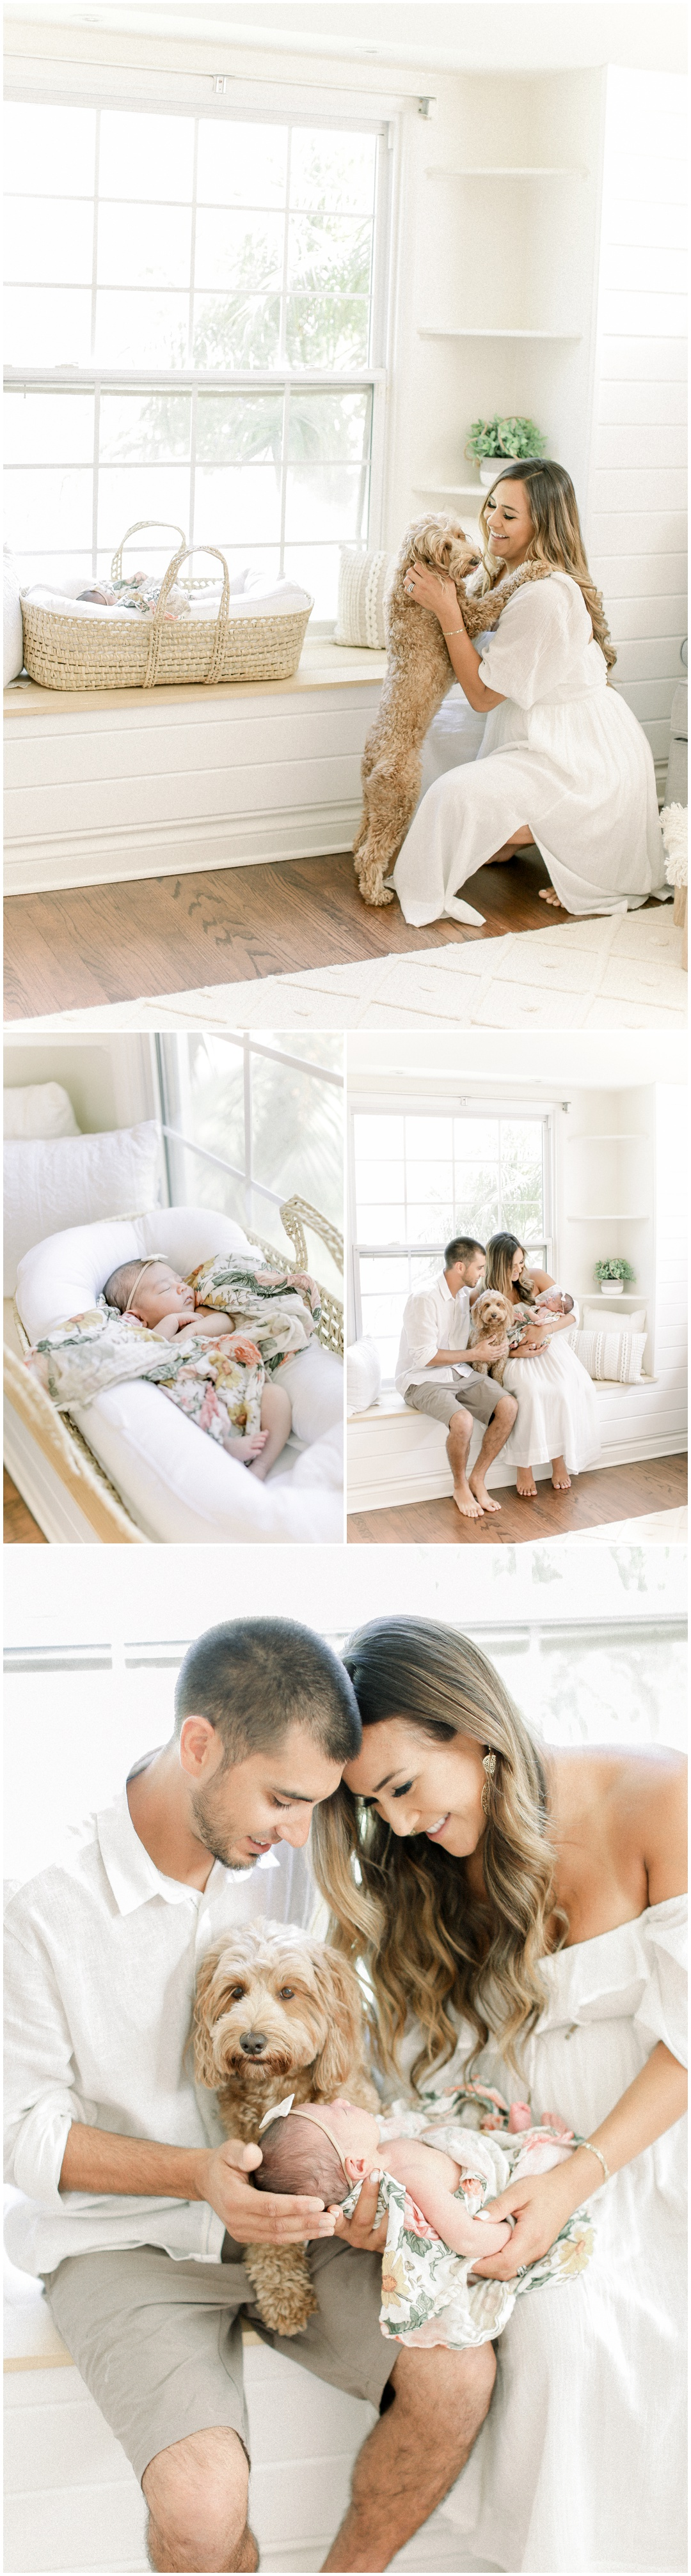 Newport_Beach_Newborn_Light_Airy_Natural_Photographer_Newport_Beach_Photographer_Orange_County_Family_Photographer_Cori_Kleckner_Photography_Newport_Beach_Newborn_Photographer_Taylor_Colacion_Family__4250.jpg